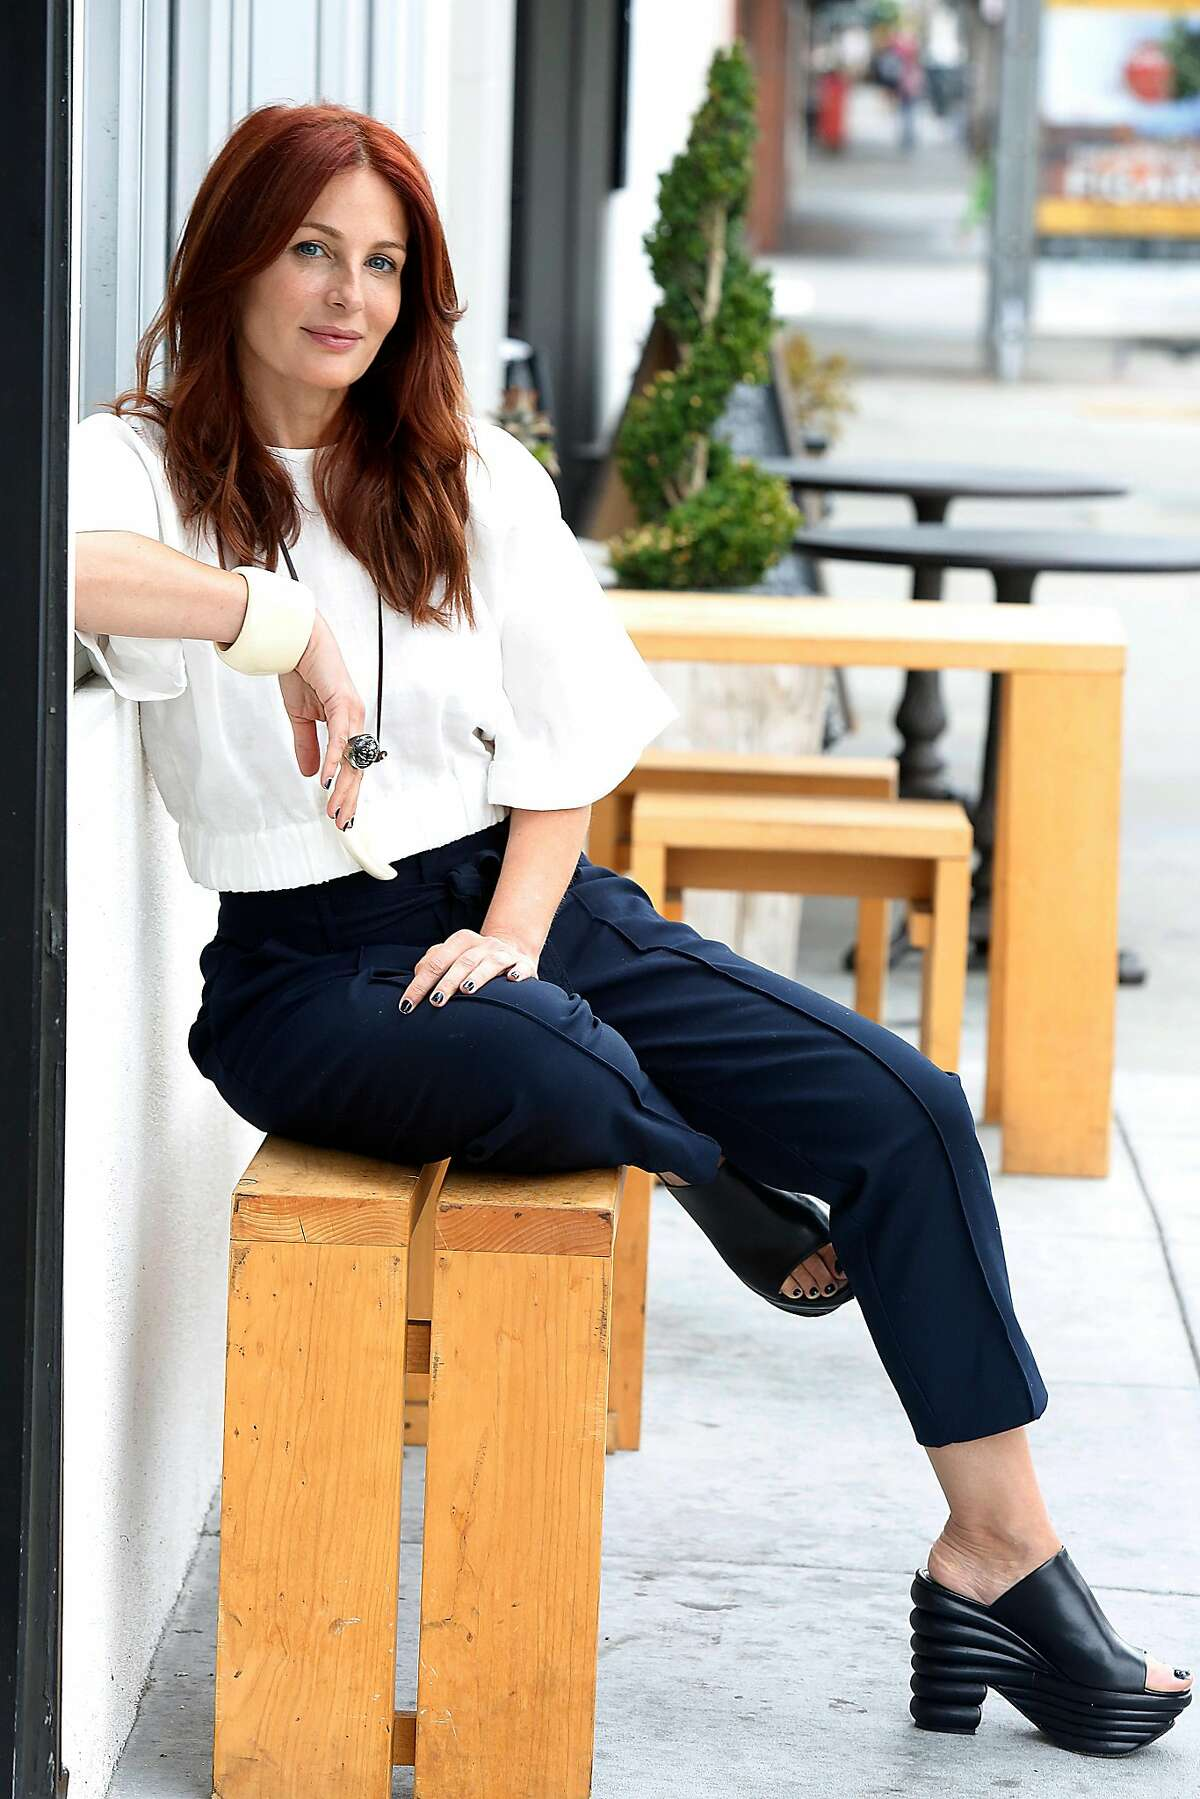 Owner Mo Clancy of Seed + Salt in front of her restaurant in San Francisco, Calif., on Wednesday, July 8, 2015.